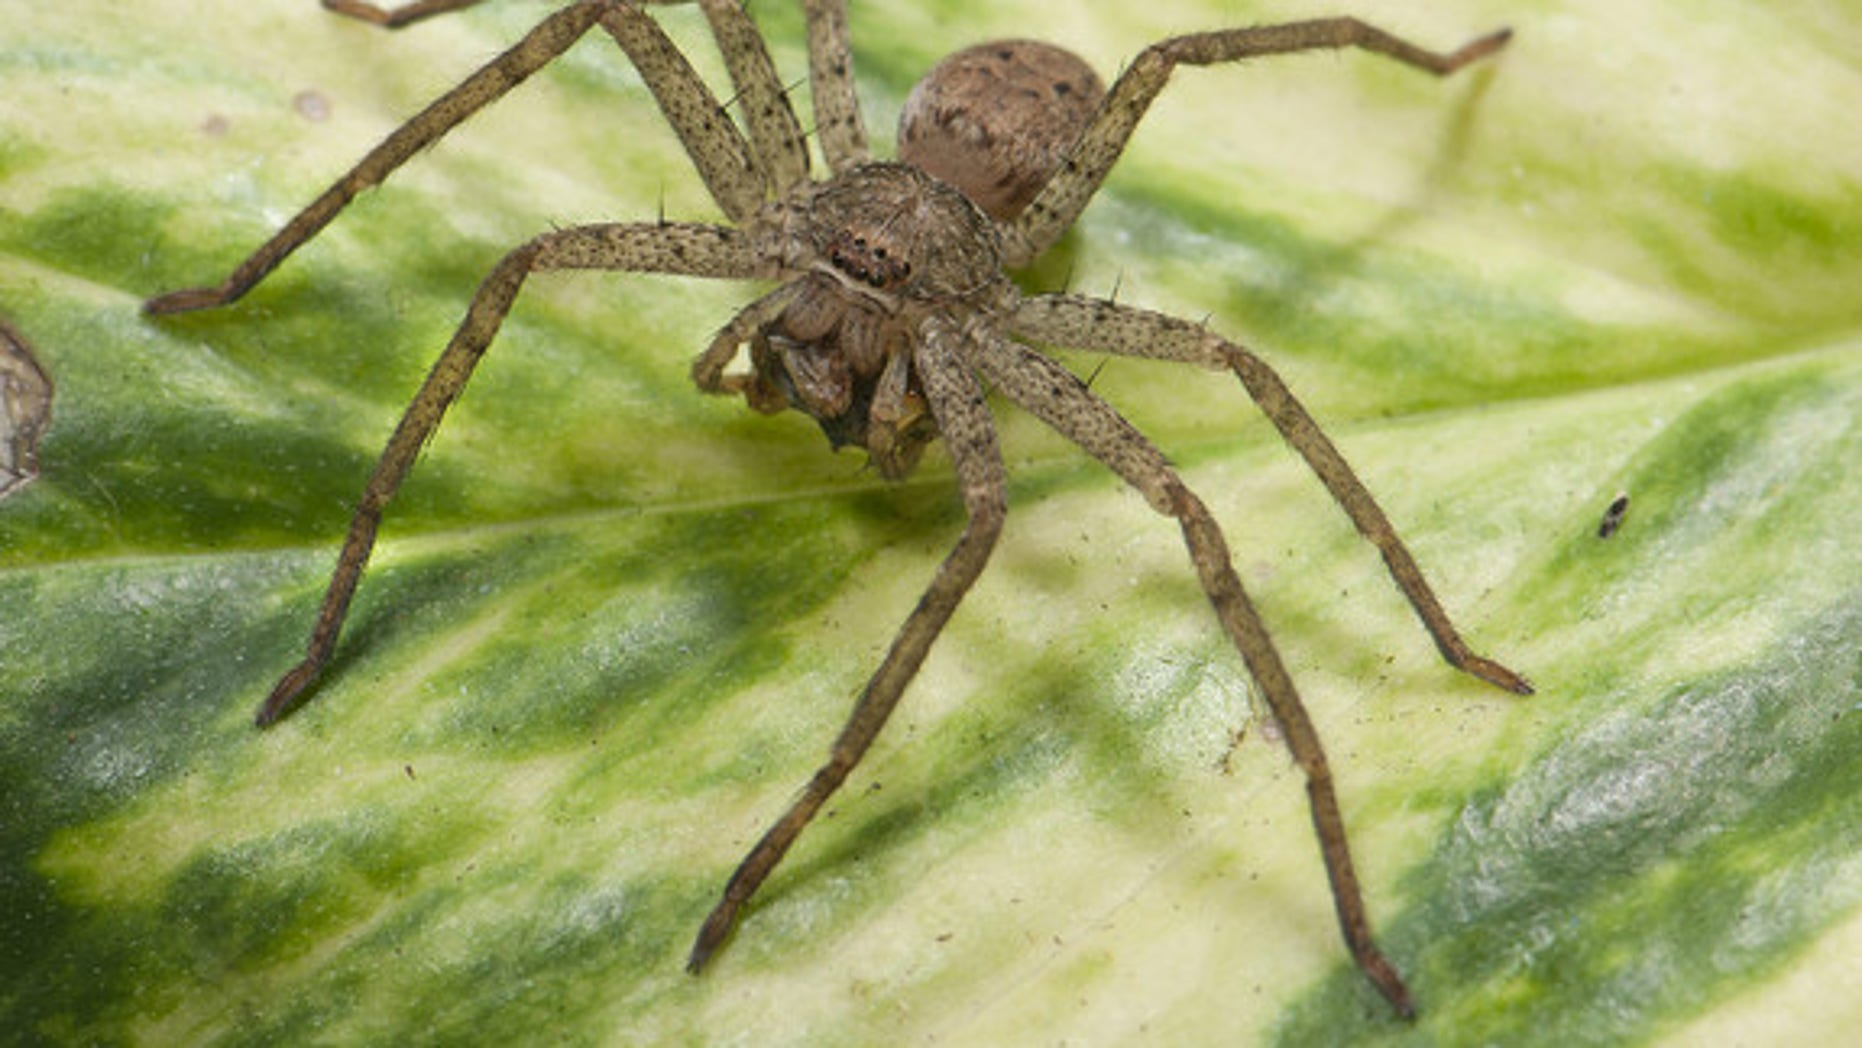 A funnel-web wolf spider, <em>Sosippus californicus</em>. This spider spins a sheet-like web attached to a narrow tube, or funnel. Sitting at the mouth of the tube, the spider waits to strike after feeling vibrations of prey crossing the web.